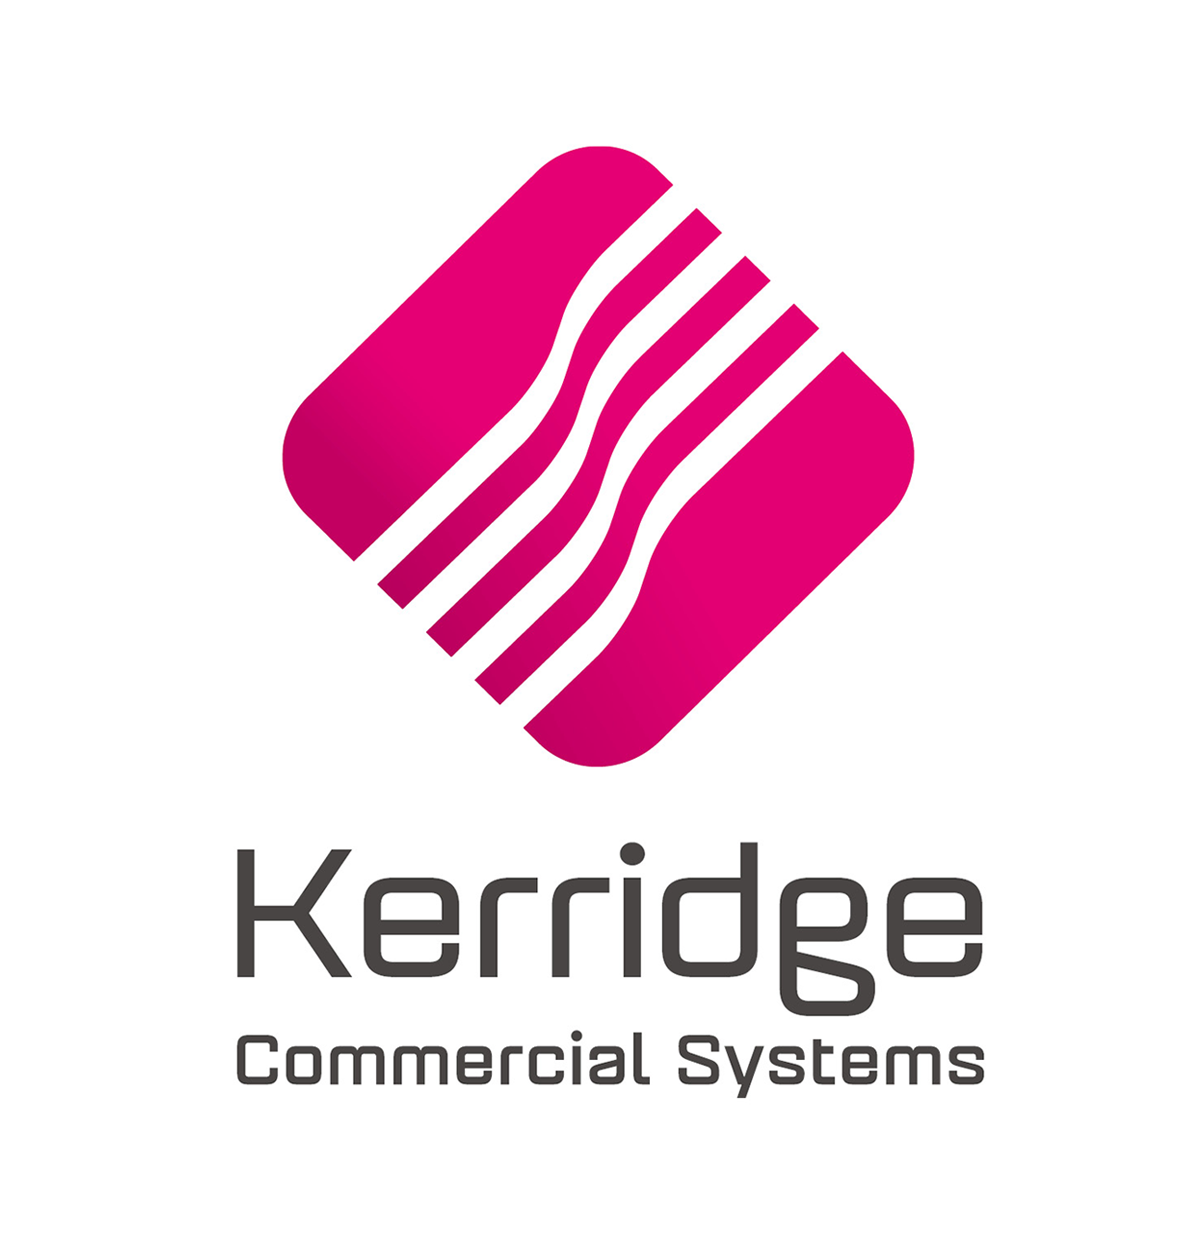 AGP is Kerridge Commercial Systems